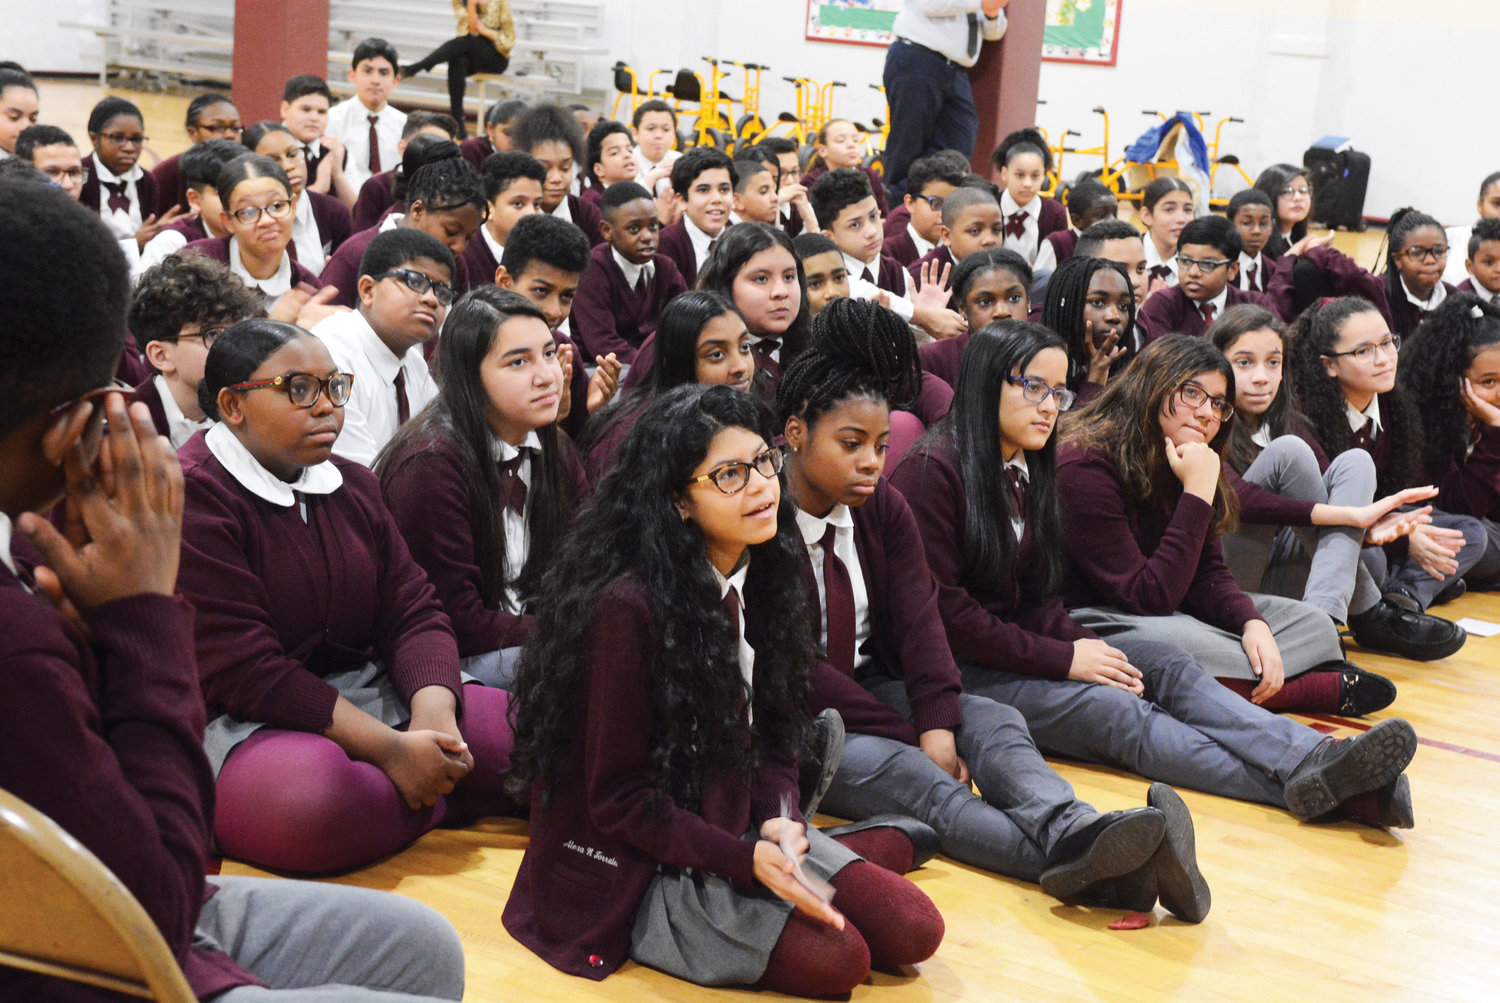 Sixth-, seventh- and eighth-grade students at St. Angela Merici School in the Bronx listen to a Career Day panel of judges, lawyers, court officers, court reporters, social workers and interpreters. The Bronx Catholic Guild and Bronx Women's Bar Association sponsored the Jan. 18 event.